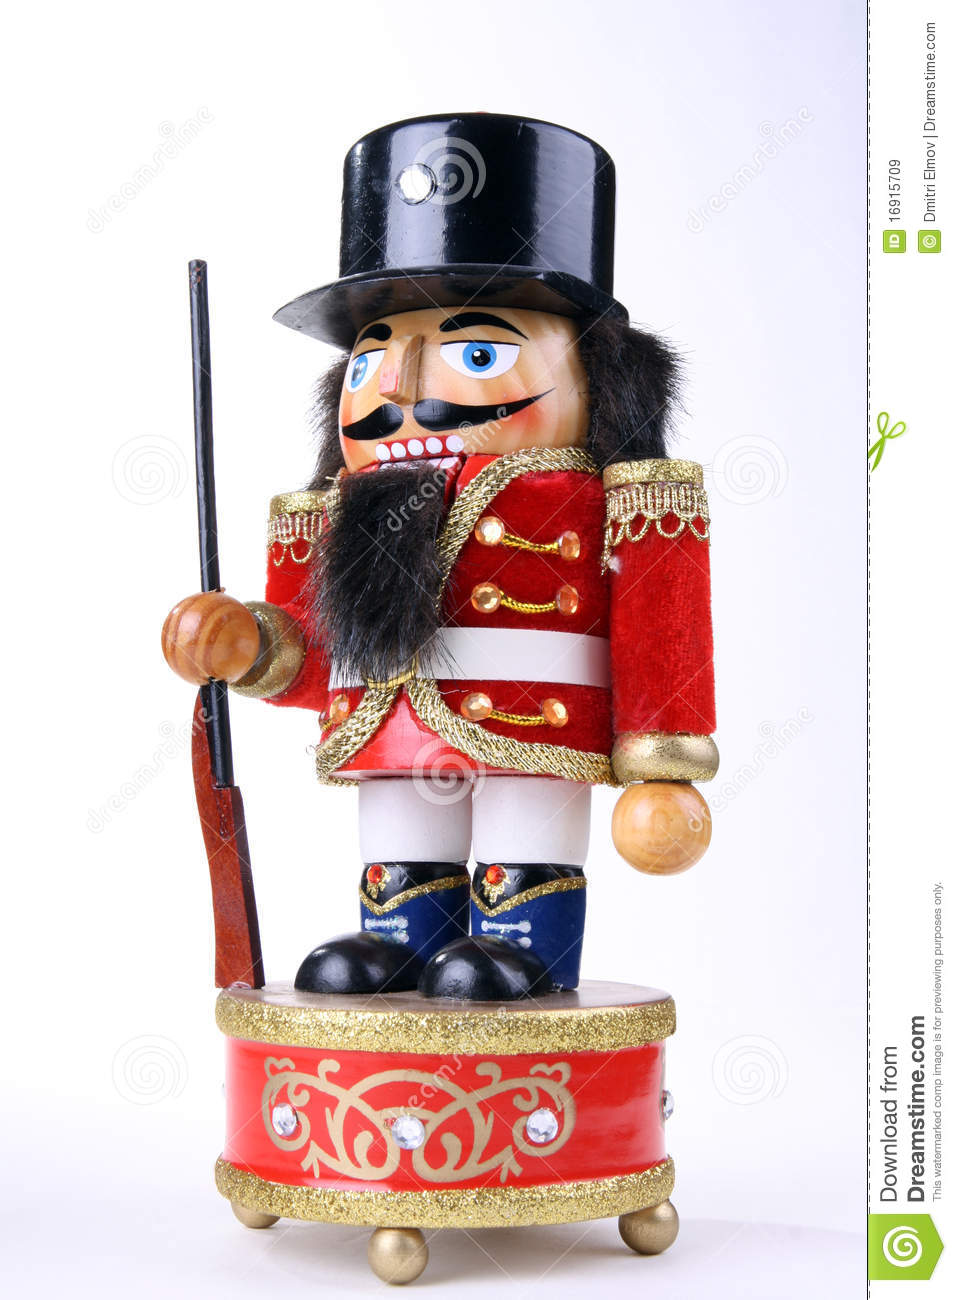 nutcracker toy royalty free stock images image 16915709 nutcracker clip art free nutcracker clipart black and white vector